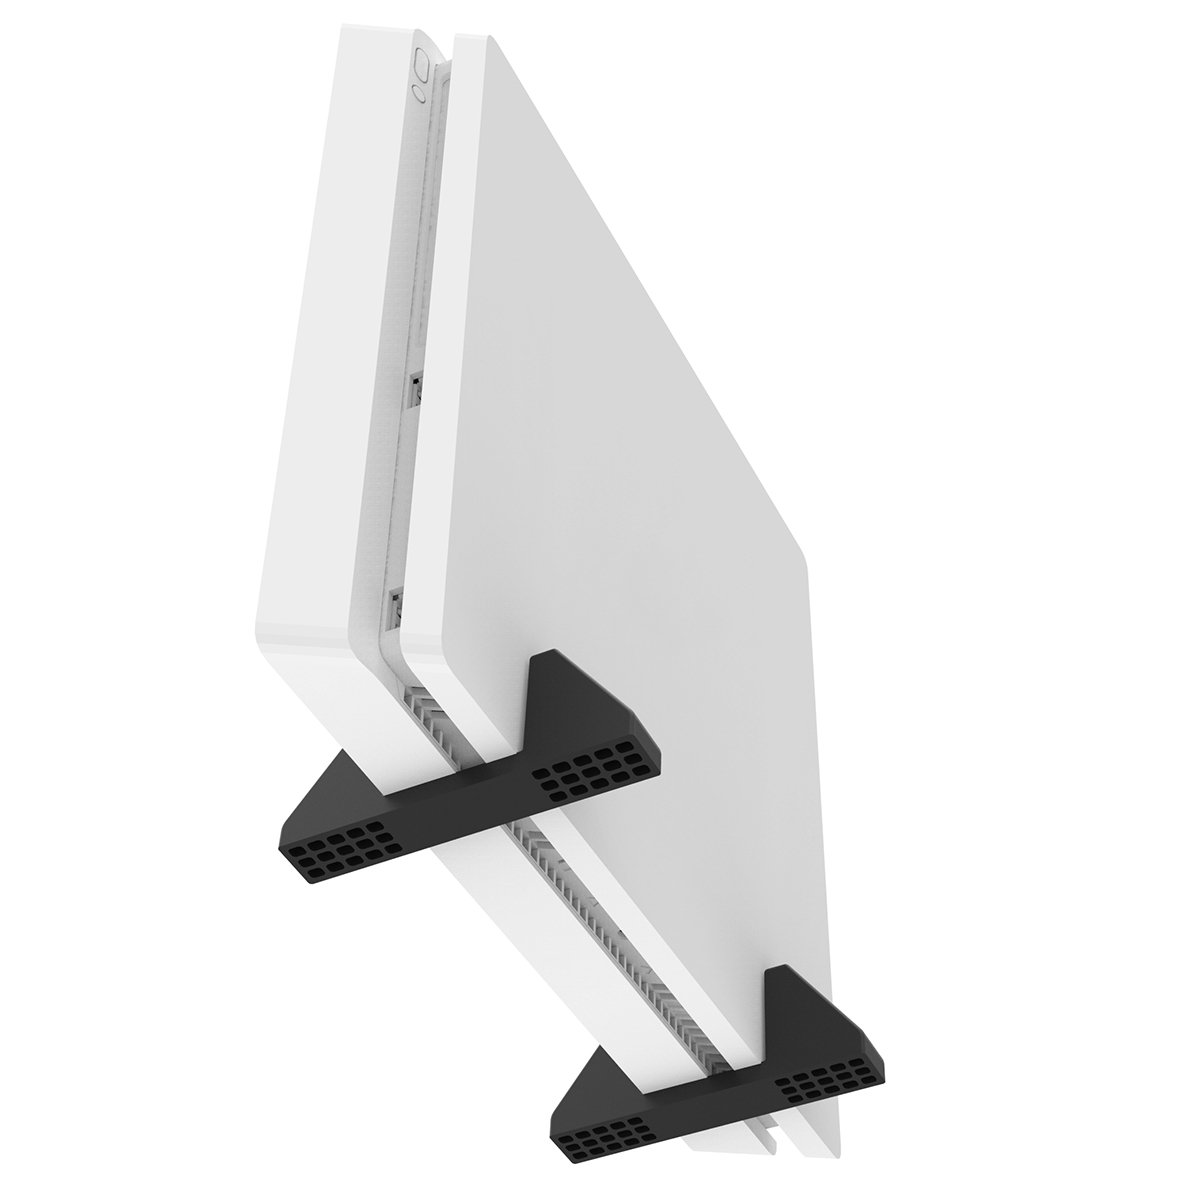 Amazon Com Capcy Ps4 Slim Vertical Stand For Playstation 4 Slim